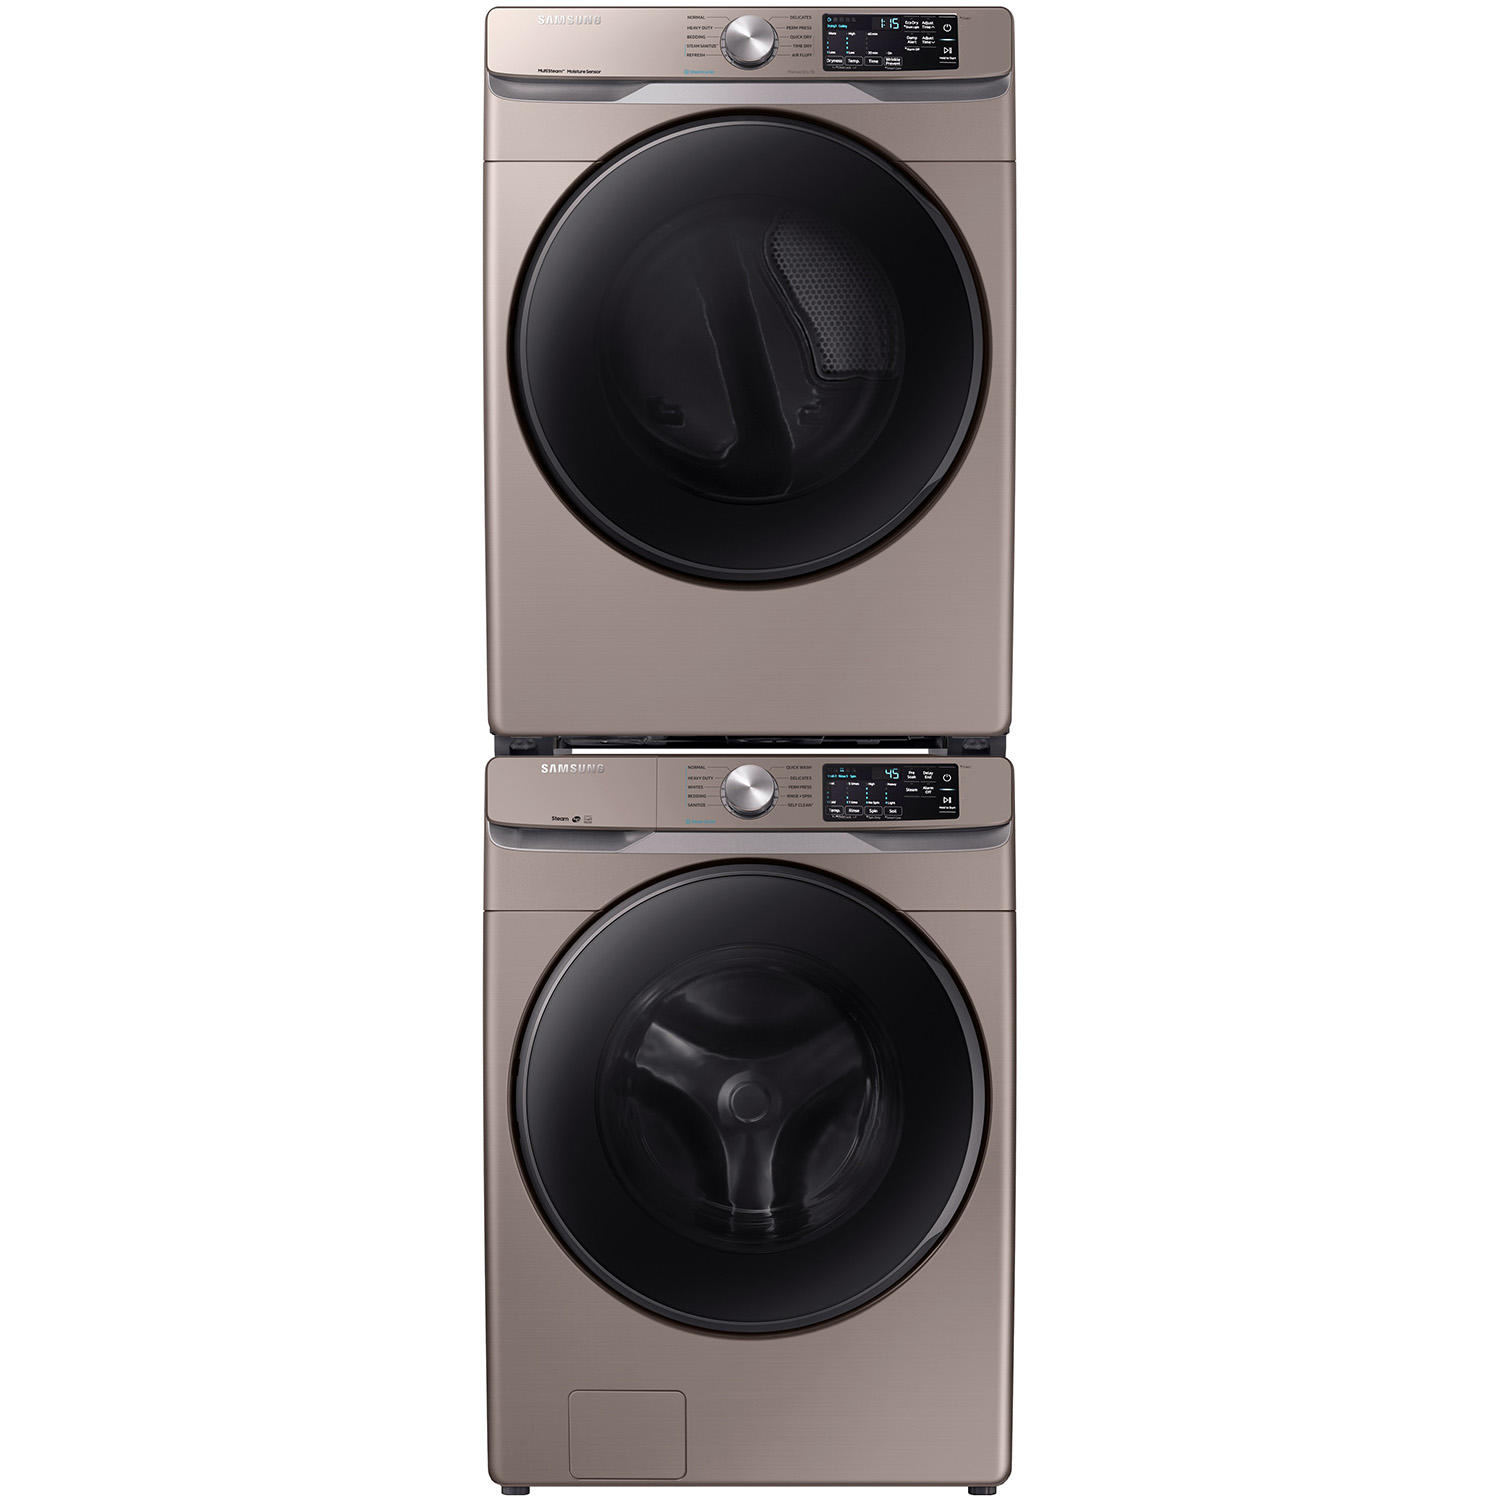 Samsung Stackable Laundry Pair in Champagne